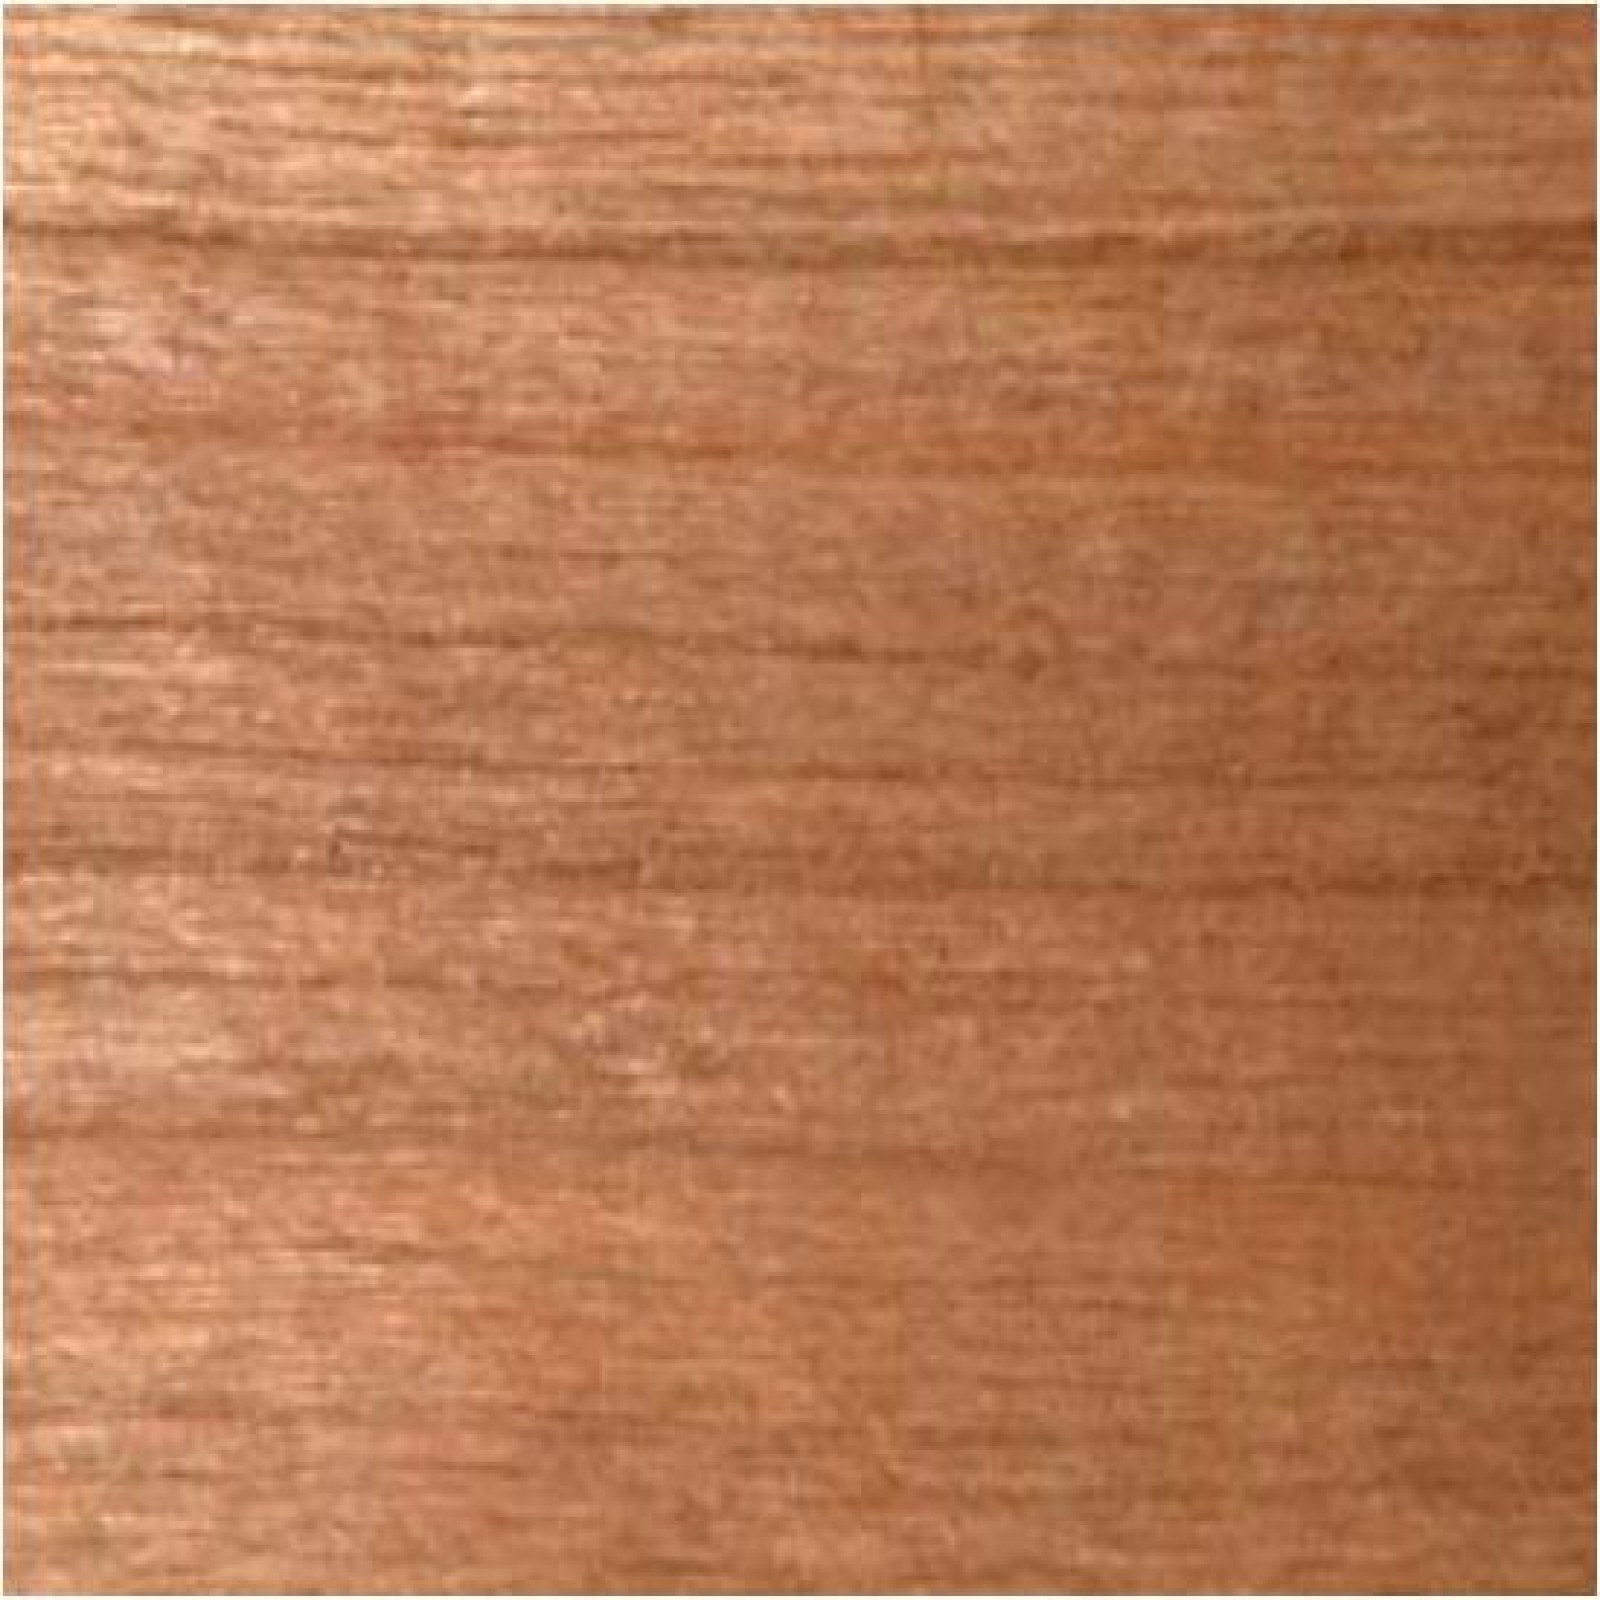 Cherry Wood Sheet  1/8 x 3 x 24